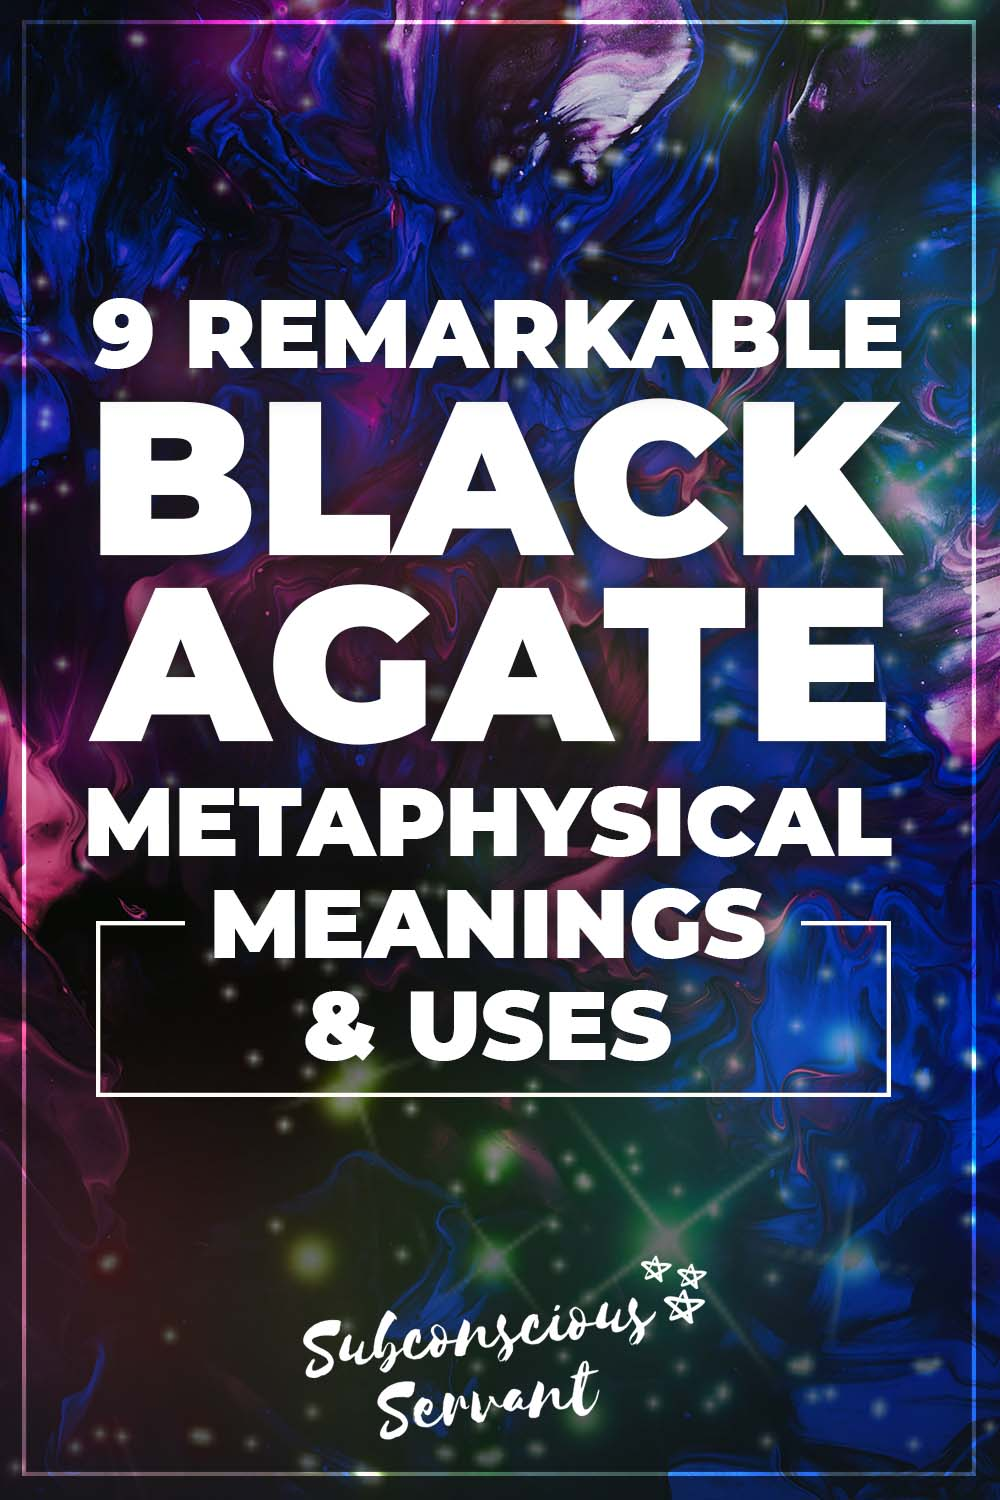 9 Remarkable Black Agate Metaphysical Meanings & Uses